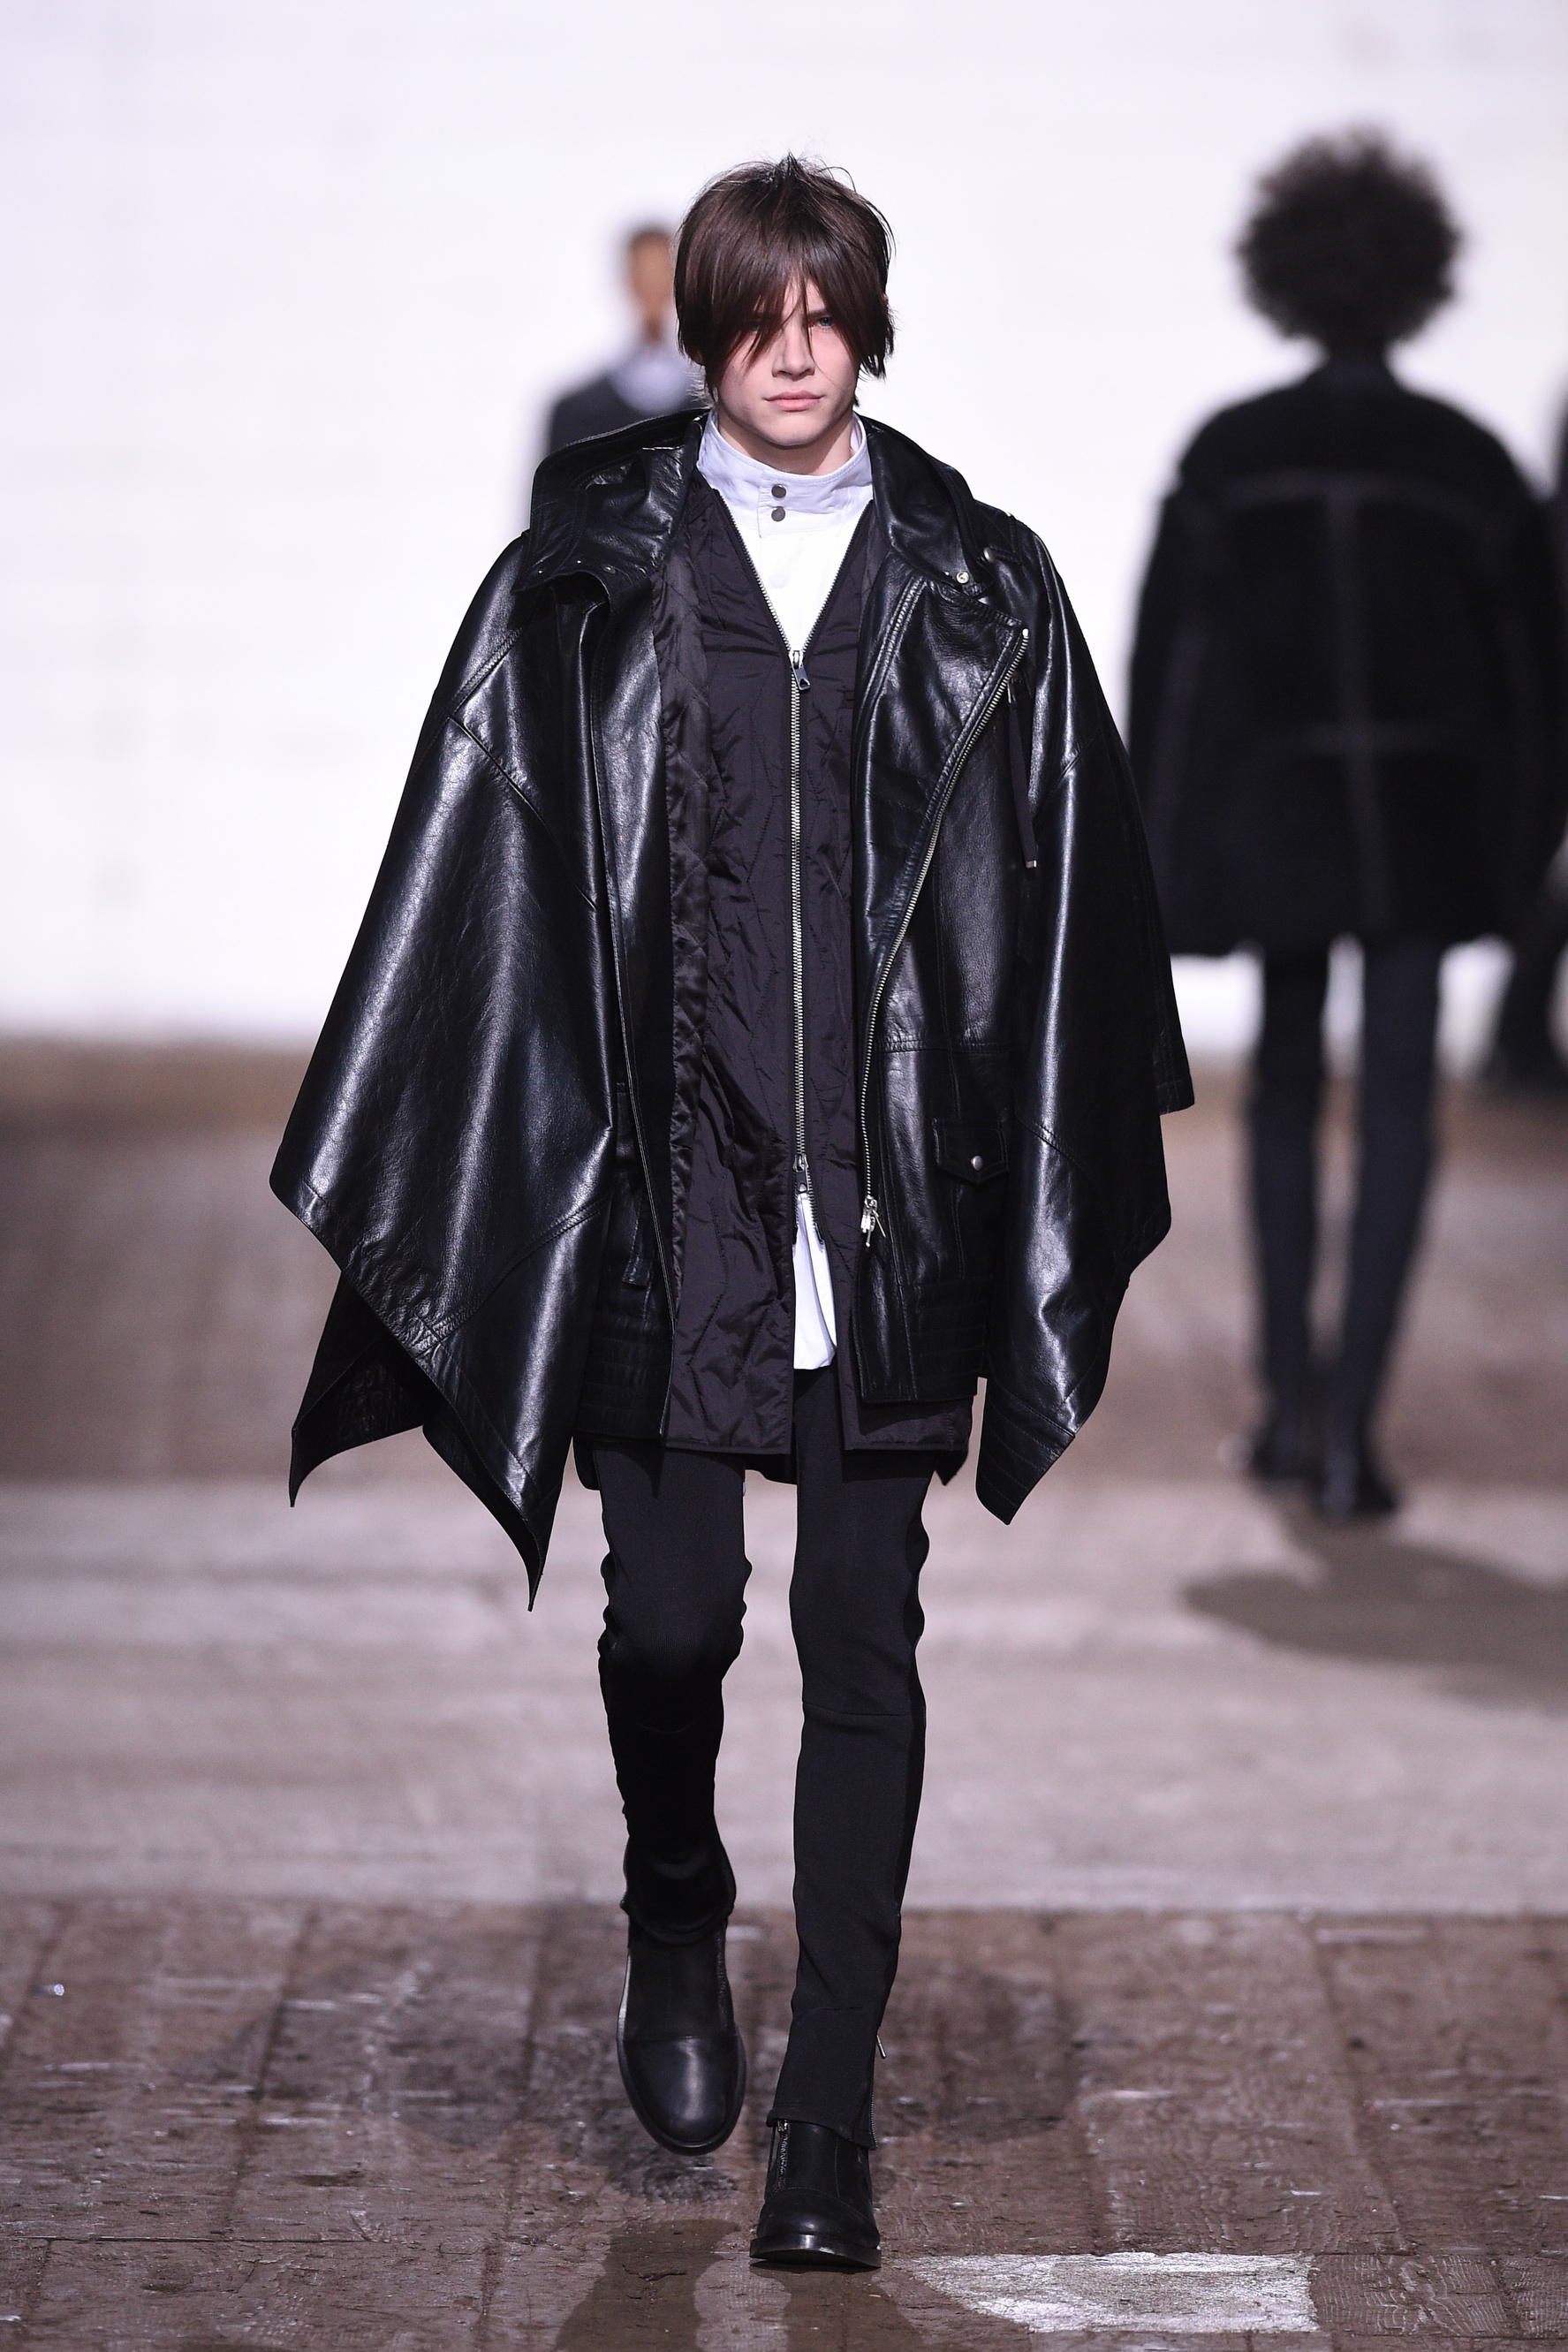 DIESEL BLACK GOLD - Fall Winter 2016/17